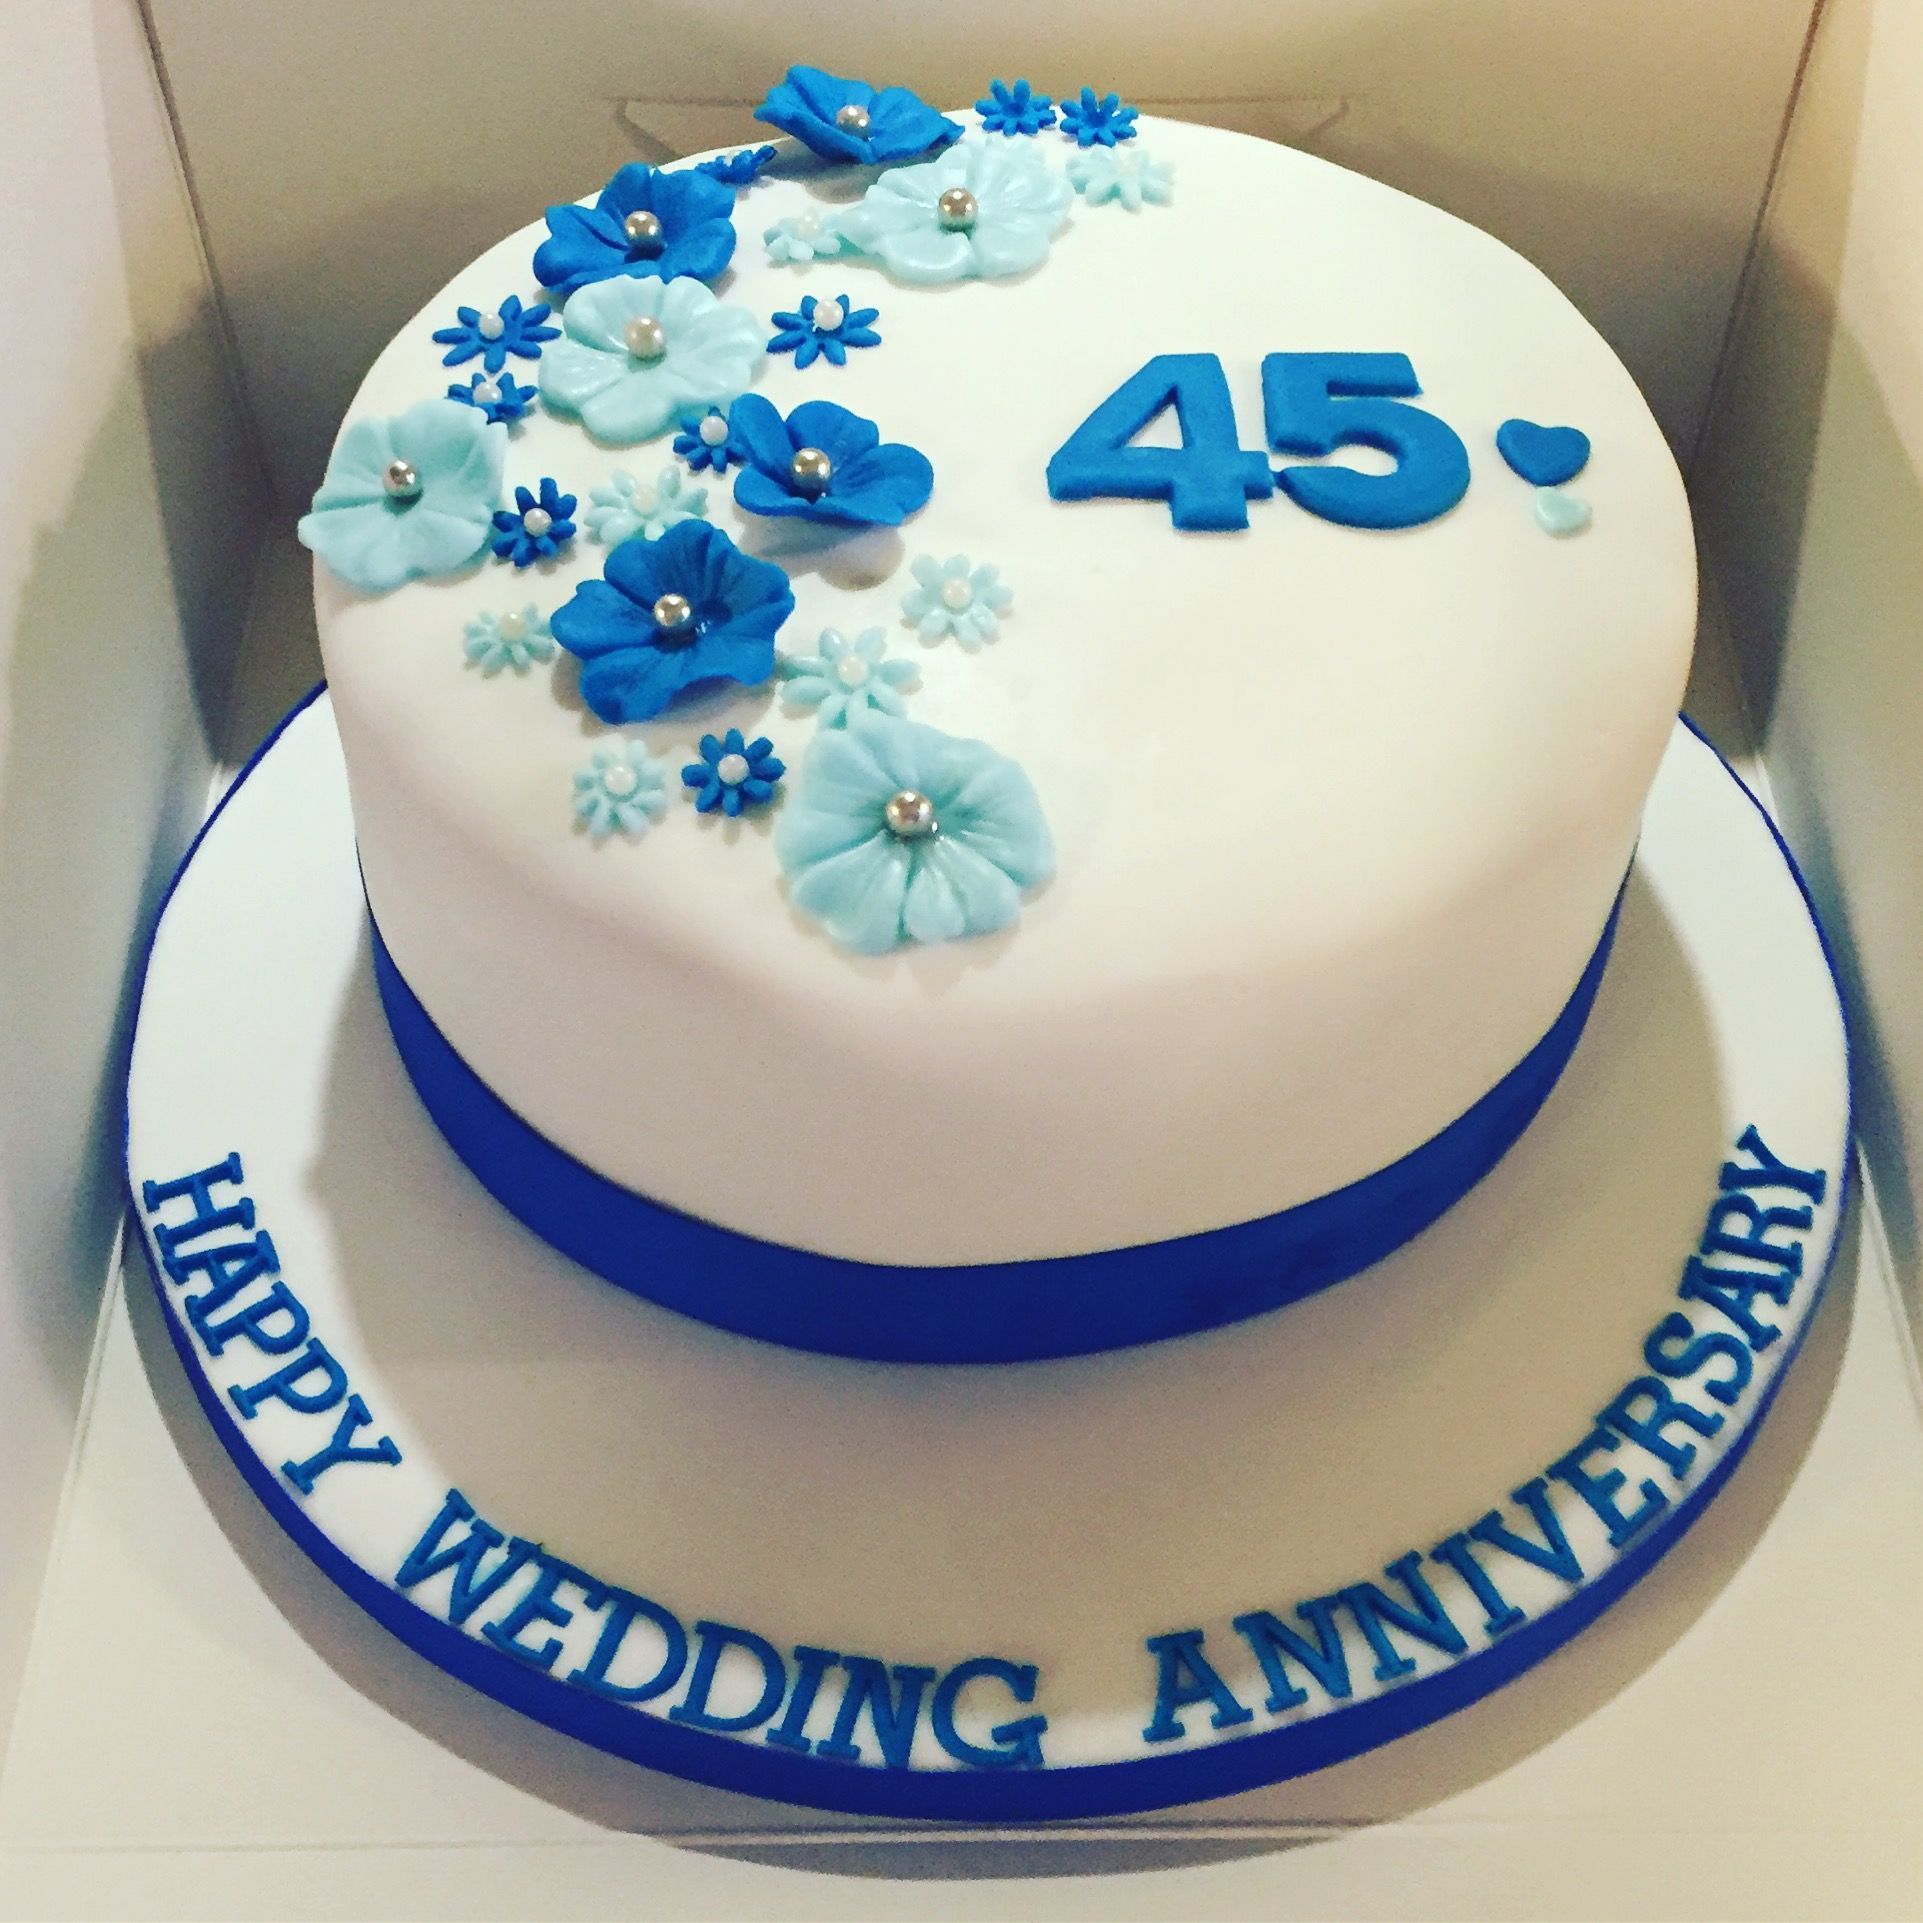 Funny anniversary cake quotes - 45th Wedding Anniversary Cake Blueflowers Sapphireanniversary